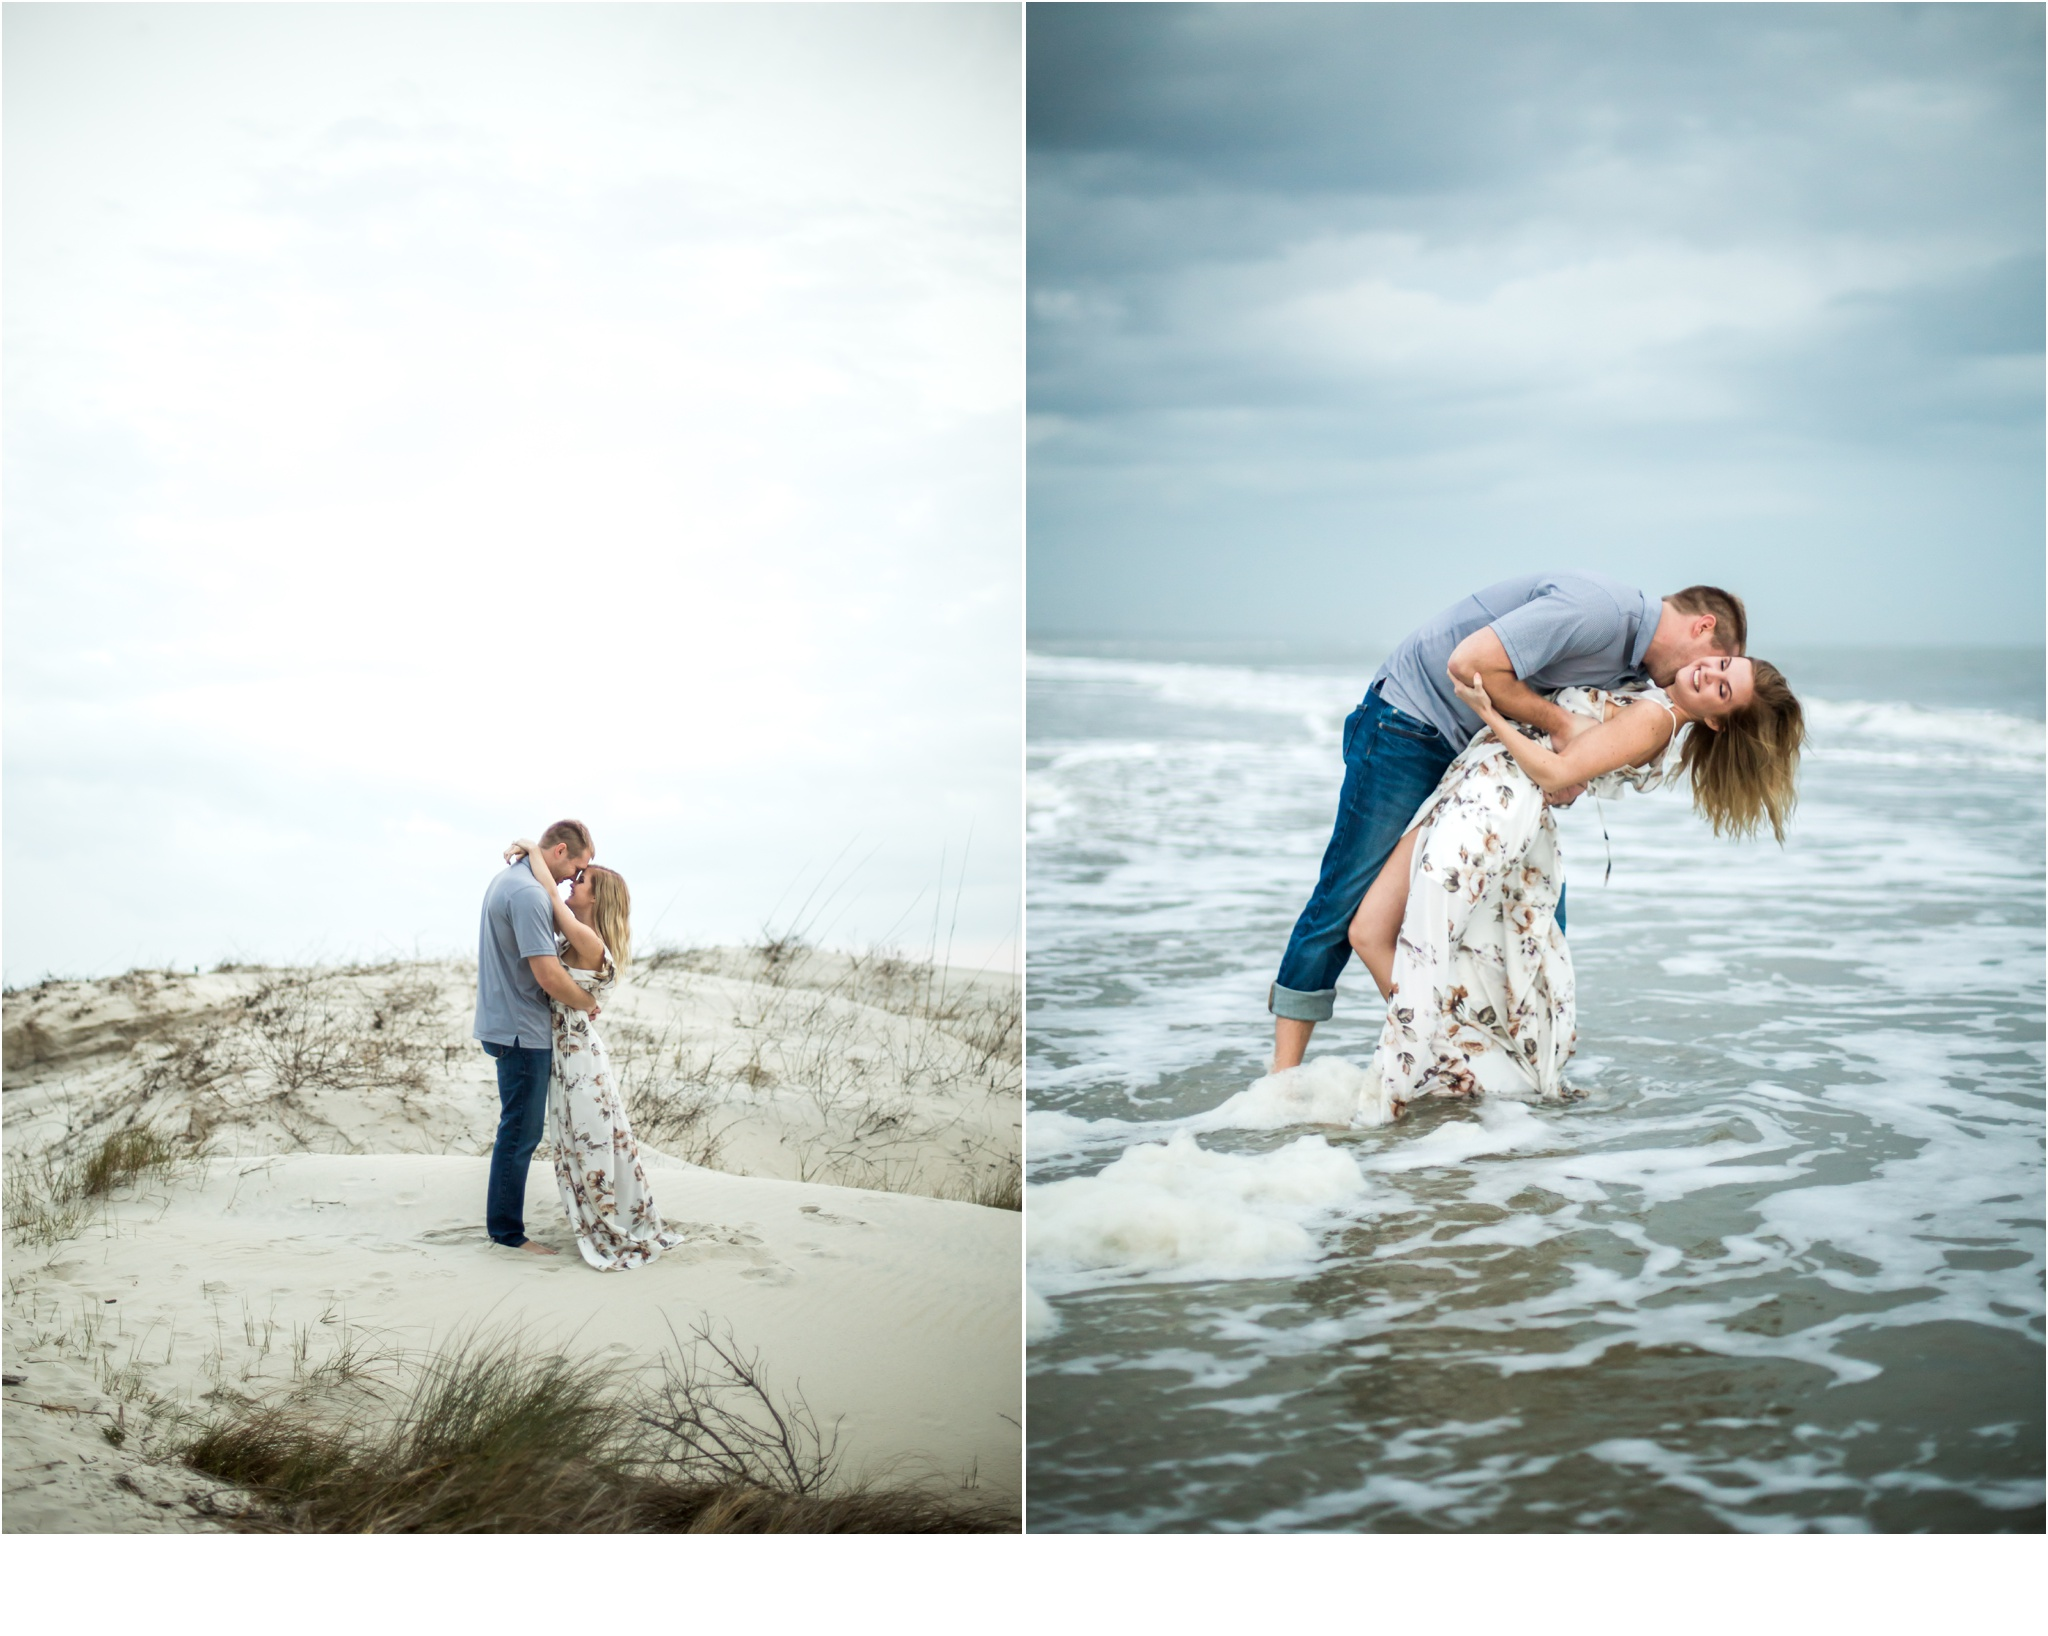 Rainey_Gregg_Photography_St._Simons_Island_Georgia_California_Wedding_Portrait_Photography_1416.jpg